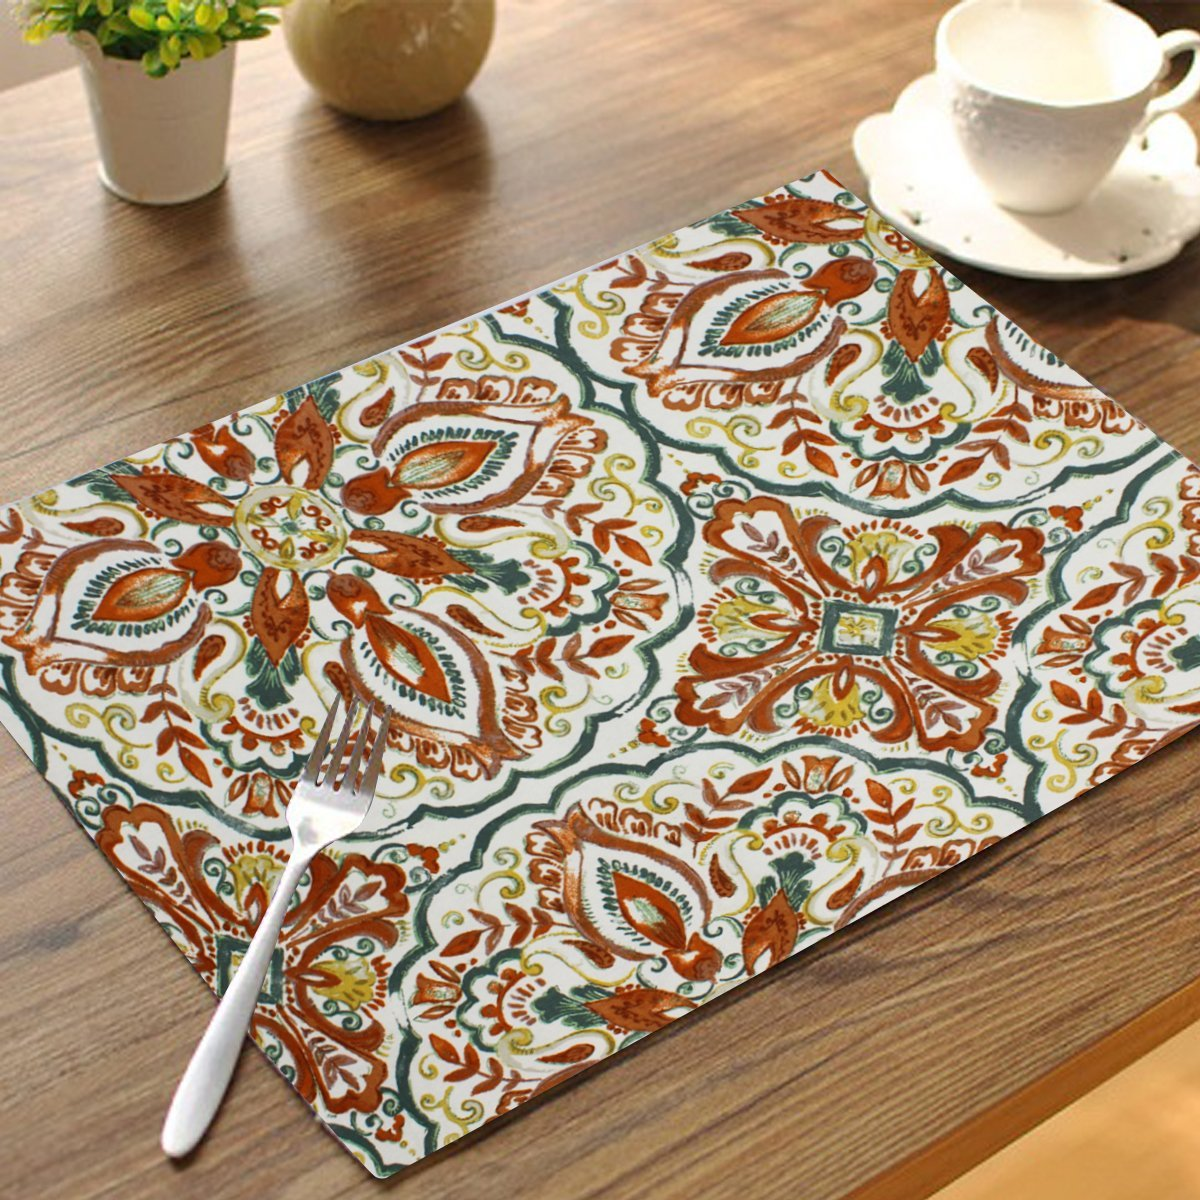 Export Quality Table Mat - Rectangular - waseeh.com